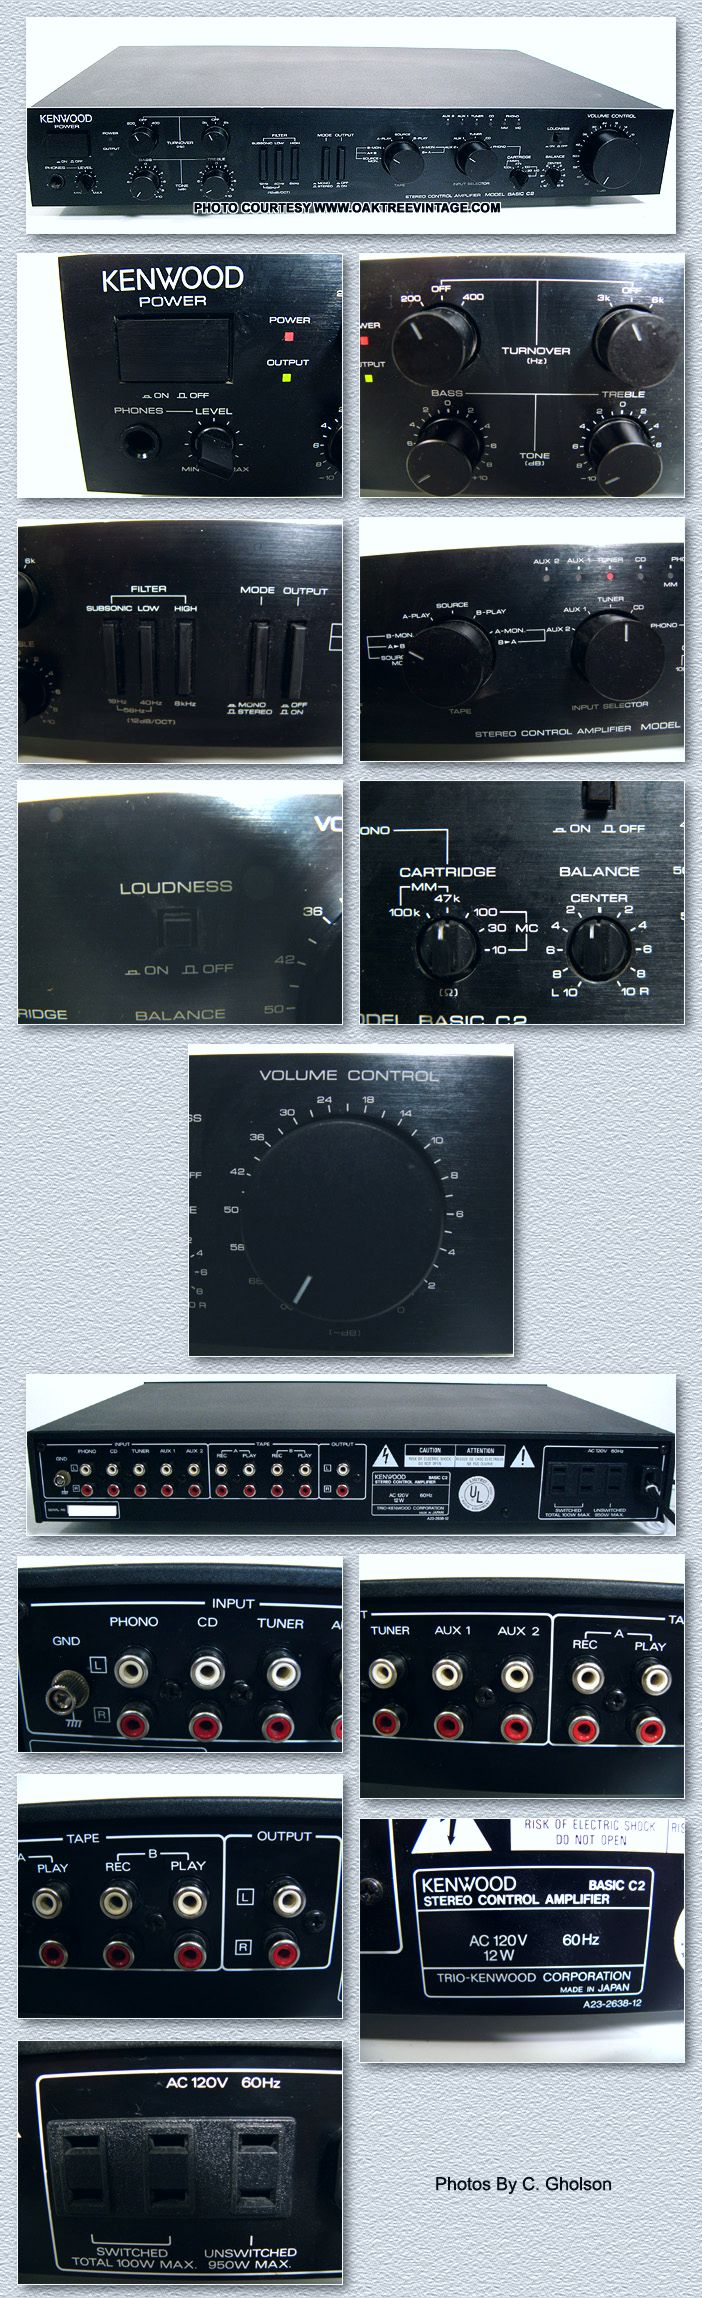 200 Watt Power Amplifier For Car By 2sc2922 2sa1216 Vintage Stereo Amplifiers Pre Amps Restored Refurbished Fully New Listing 11 14 18 Click On Above Thumbnails To Enlarge Photos